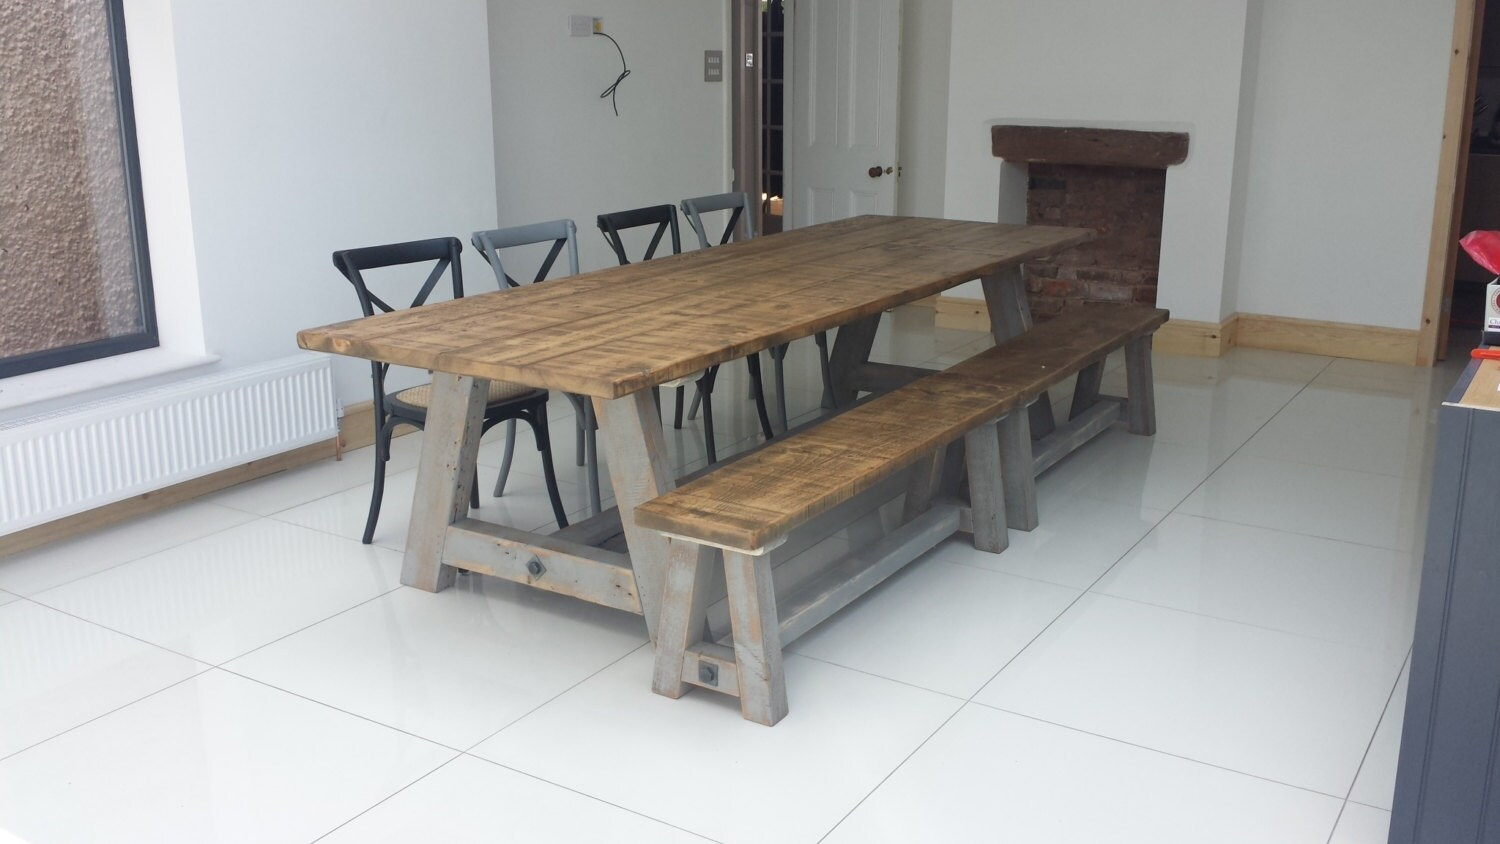 Rustic reclaim pine dining table 10 feet long matching for 10 foot long table